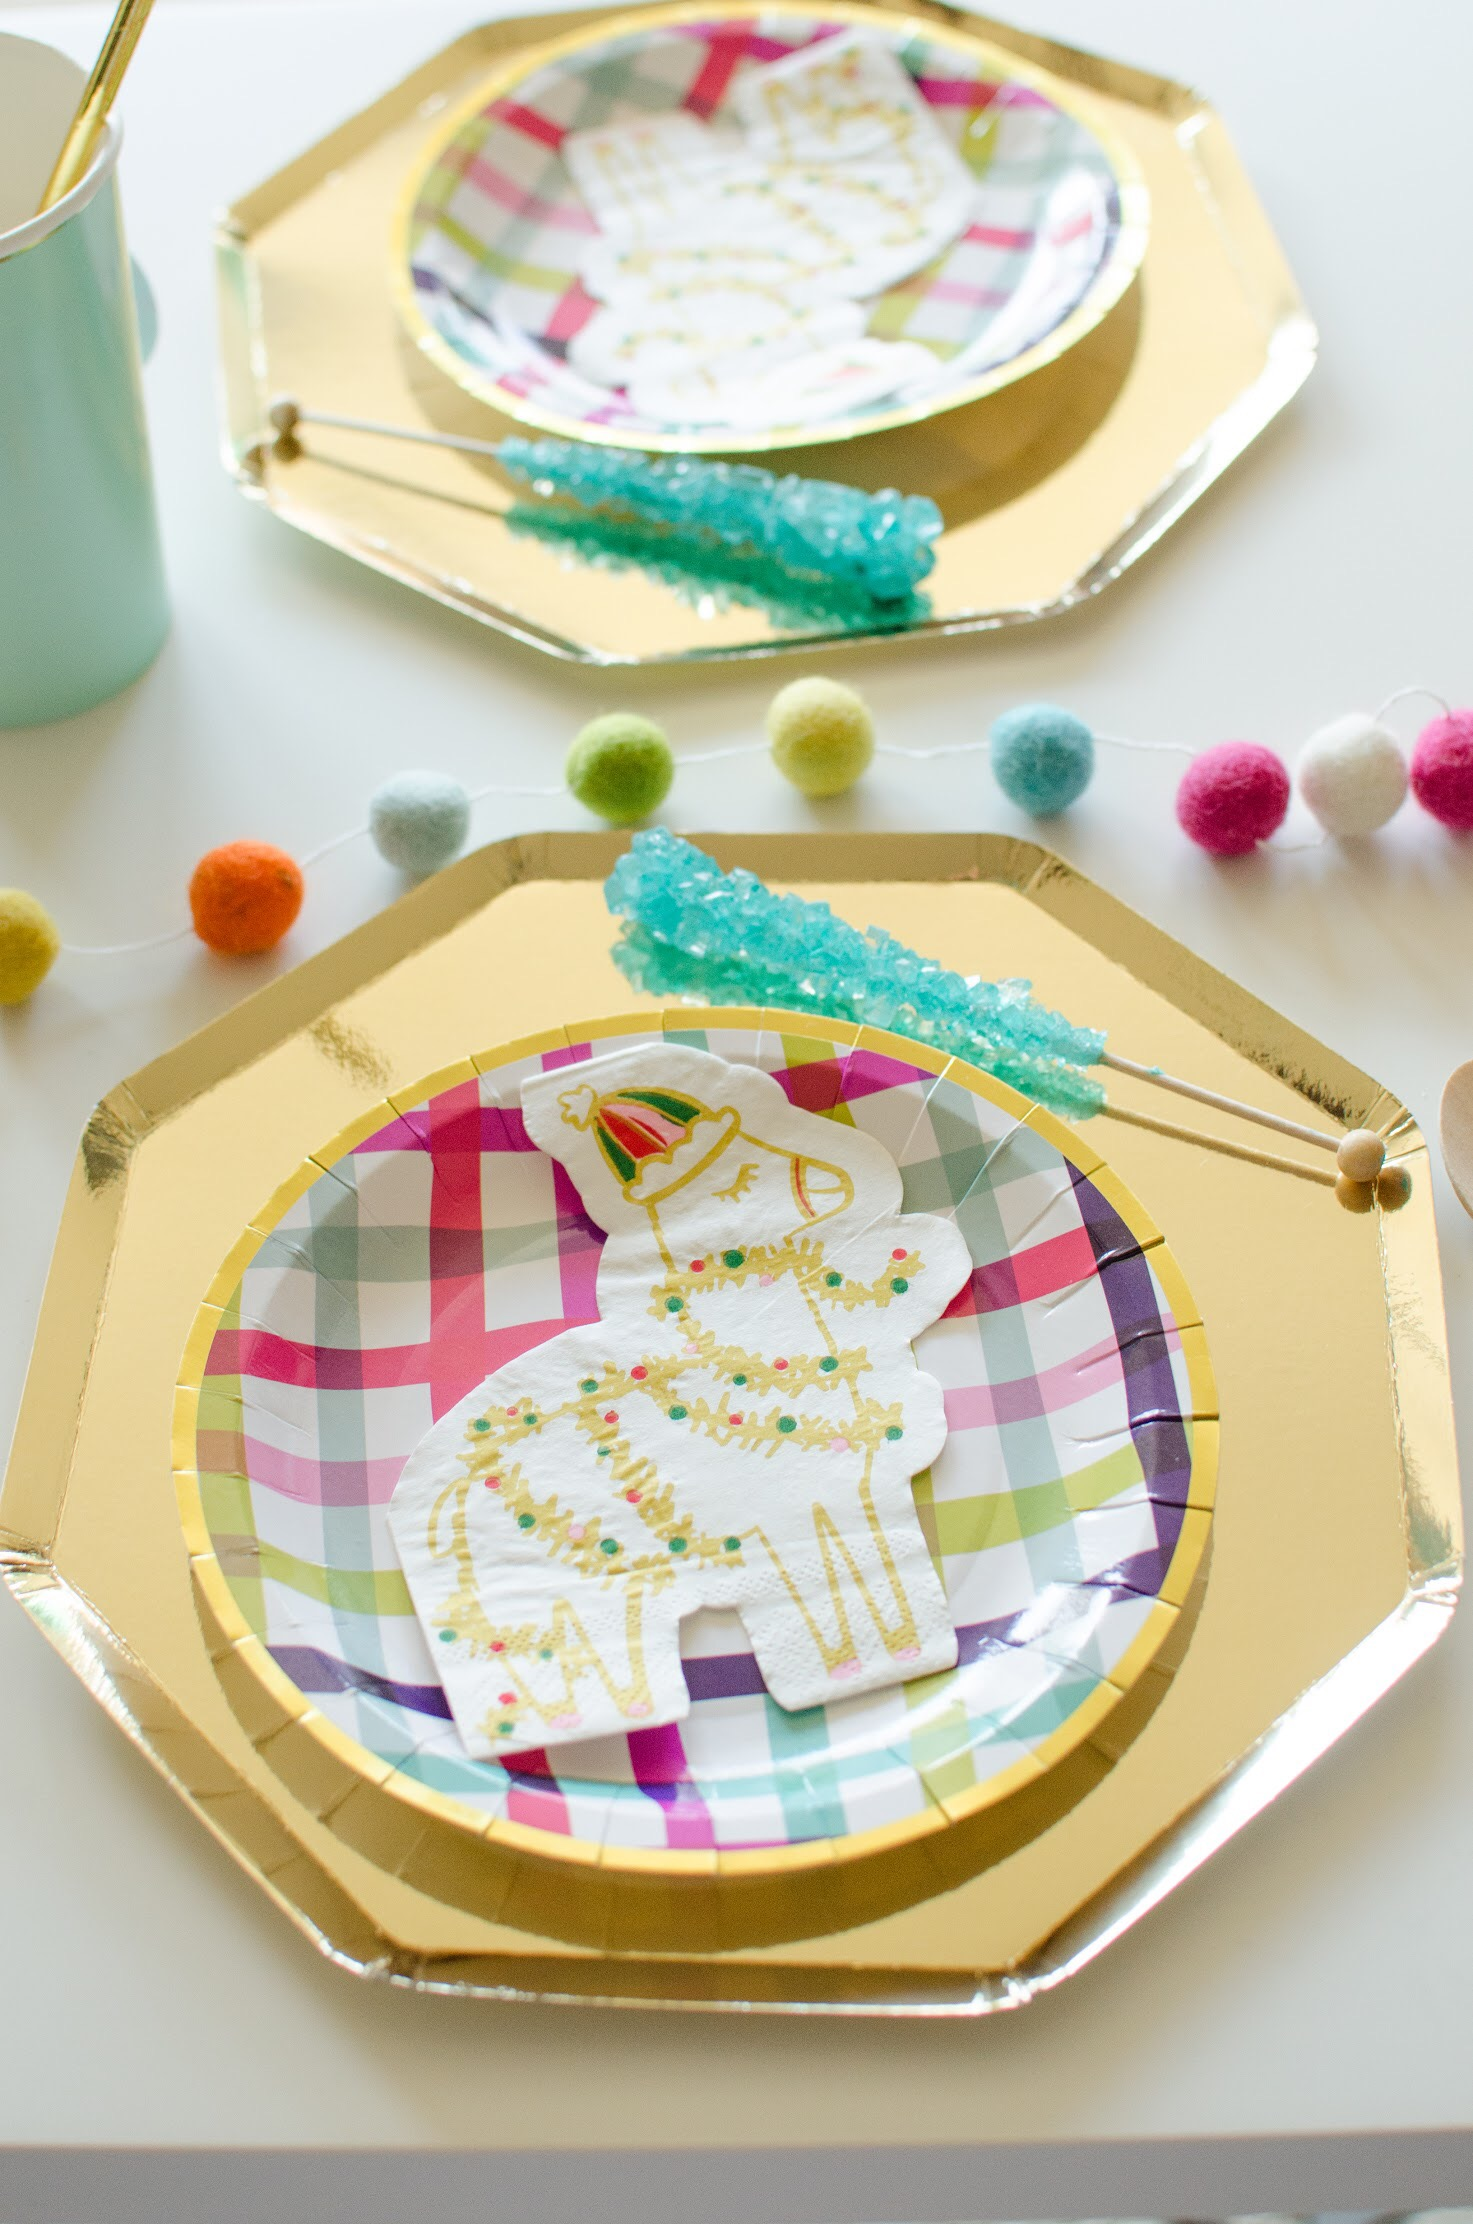 Such an adorable llama themed holiday party. This fa la la la llama party from Mint Event Design features fun plaid patterned plates in the party colors. See more from this modern llama party at www.minteventdesign.com #holidayparty #partyideas #christmasparty #holidaypartyideas #llamaparty #llamalove #tabledecorations